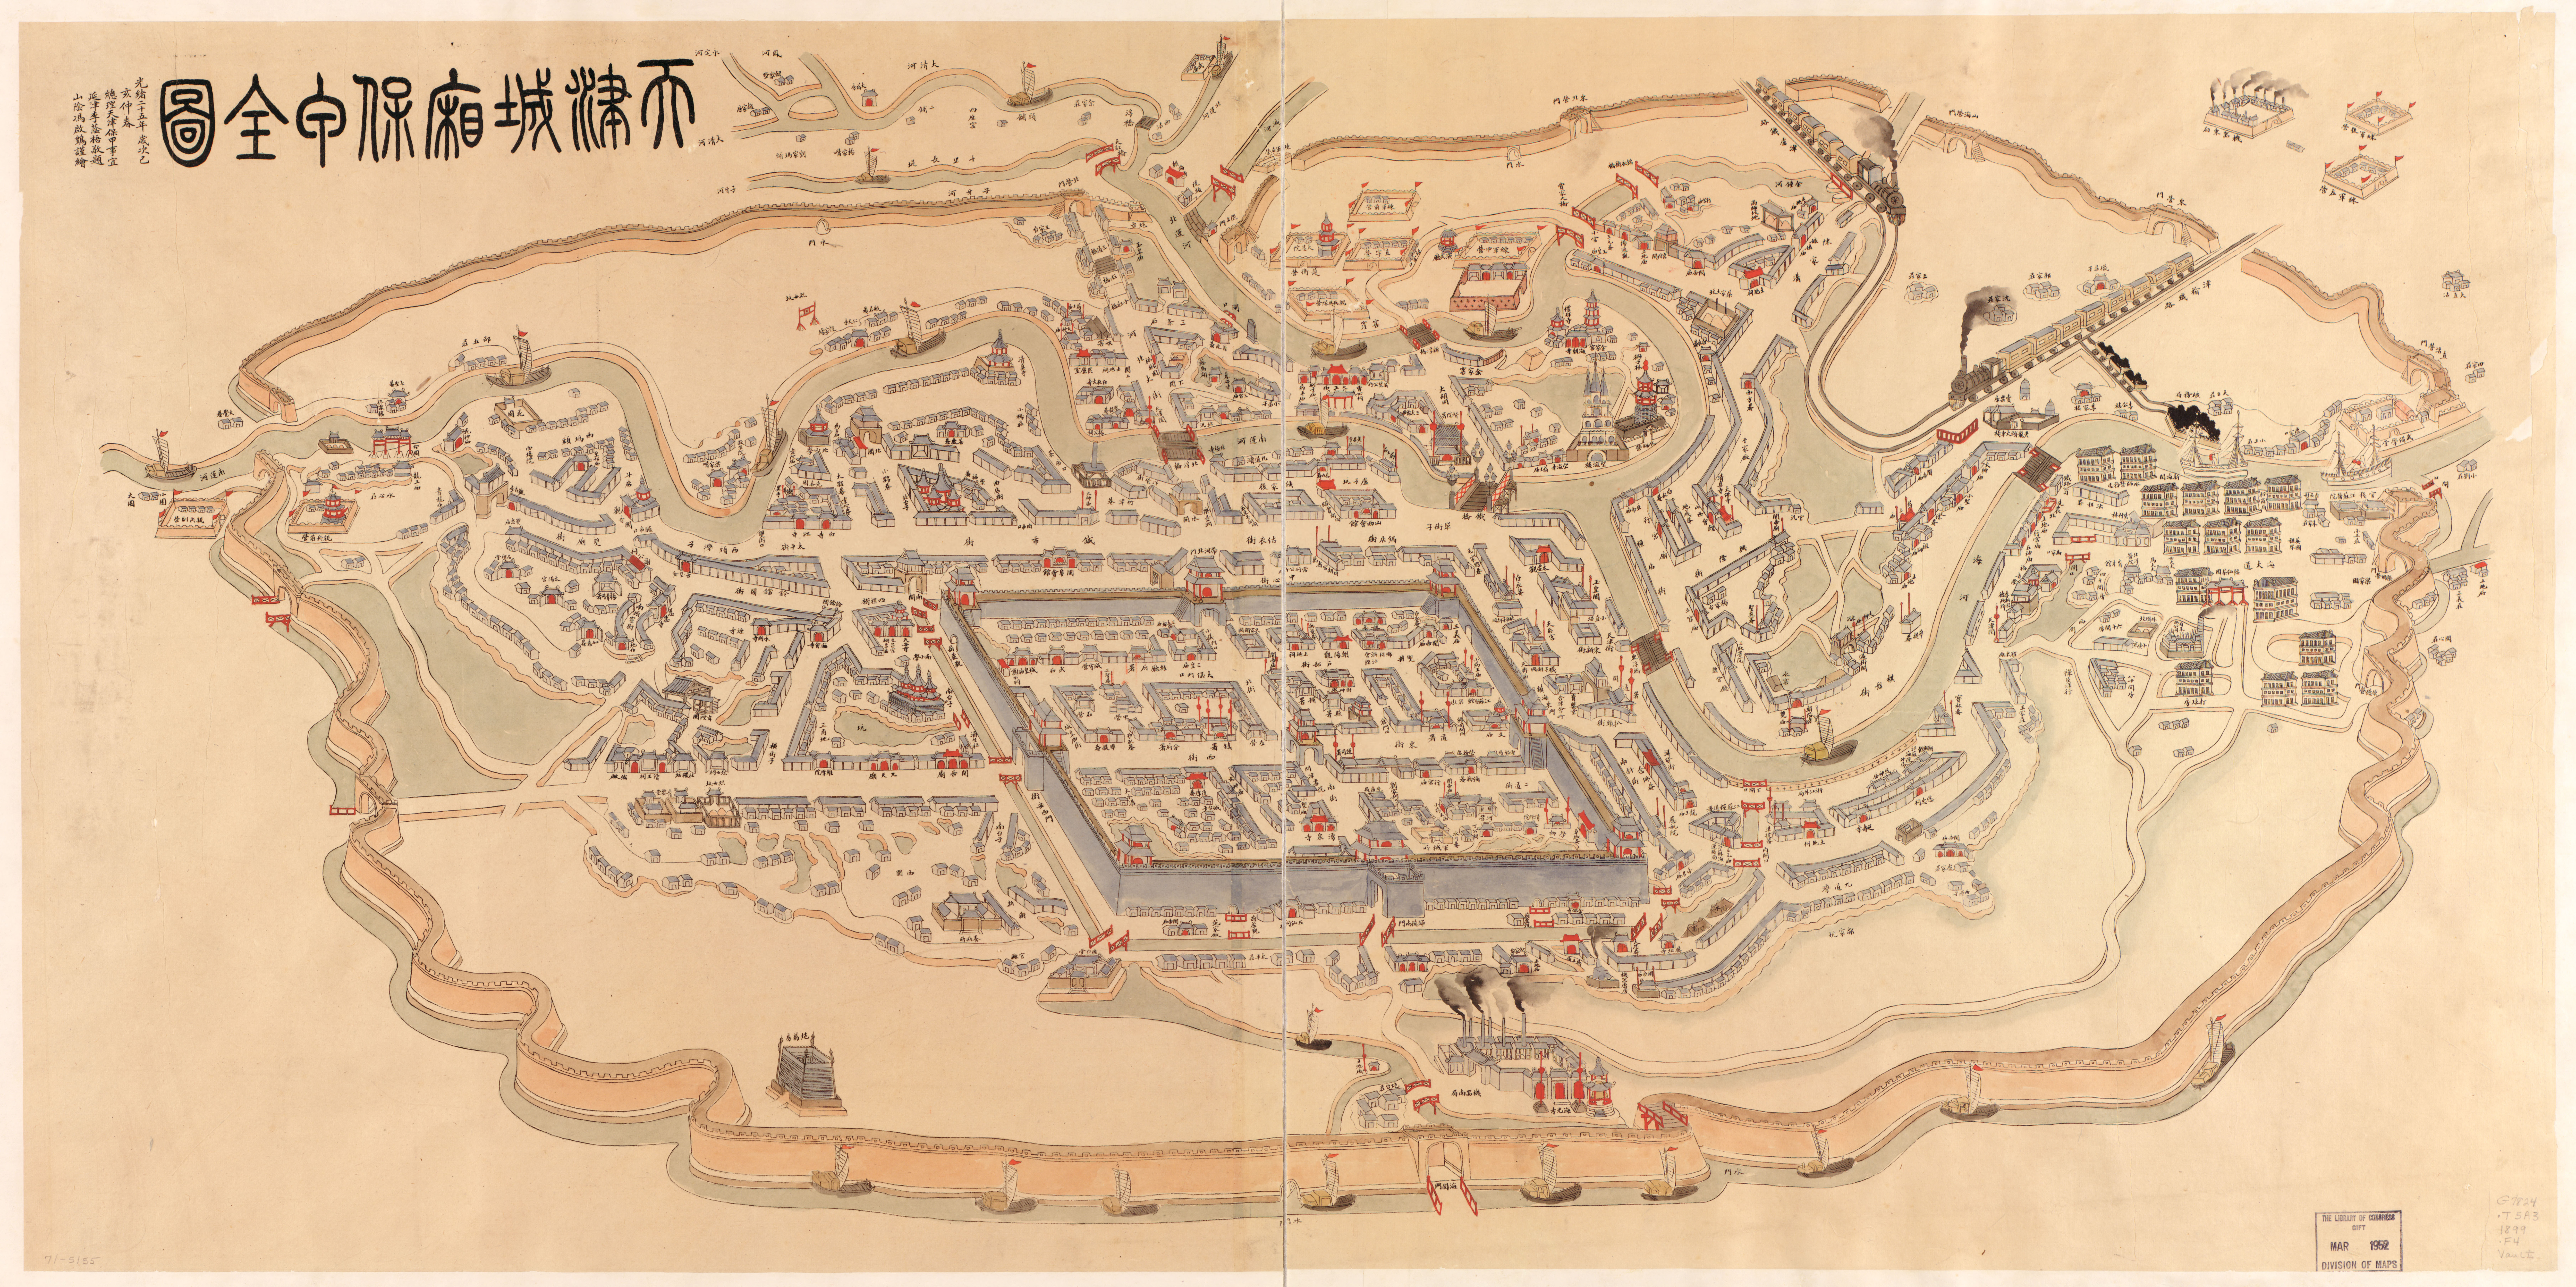 Old map of Tianjin city in 1899, China [13370x6678] : Map China Cities Map on map of china, map china guangxi region, map in us, map se usa, map japan, map china climate, map venezuela flag, map china deserts, map from europe, map western europe, map hong kong, map china travel, valencia-venezuela cities, map china airports, map china tourism, map china provinces, map of asia, map in europe, map north africa and middle east, map in india,